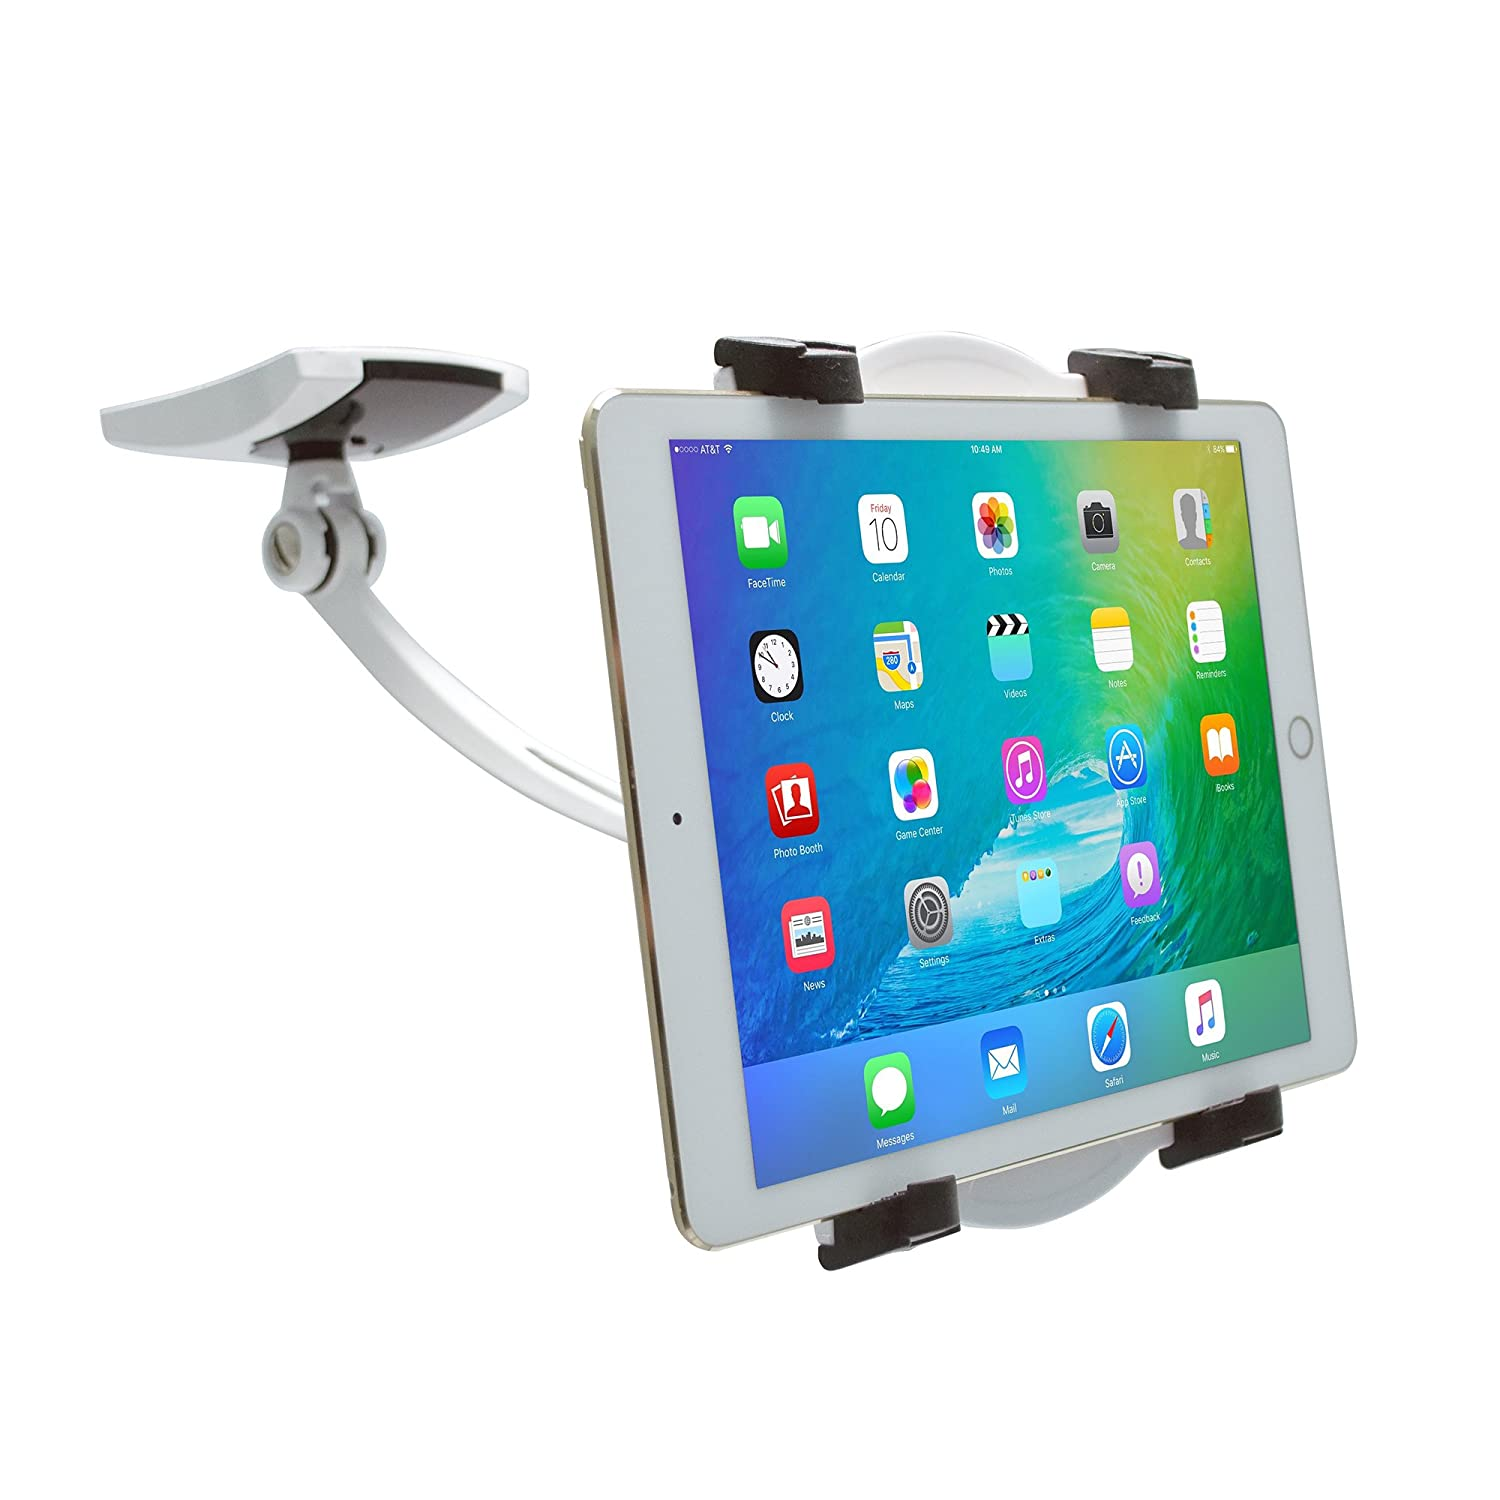 """CTA Digital Wall/Under-Cabinet & Desk Mount with 2 Mounting Bases for 7-13"""" Tablets, Including 12.9-inch iPad Pro (2018) and 11-inch iPad Pro (2018)"""